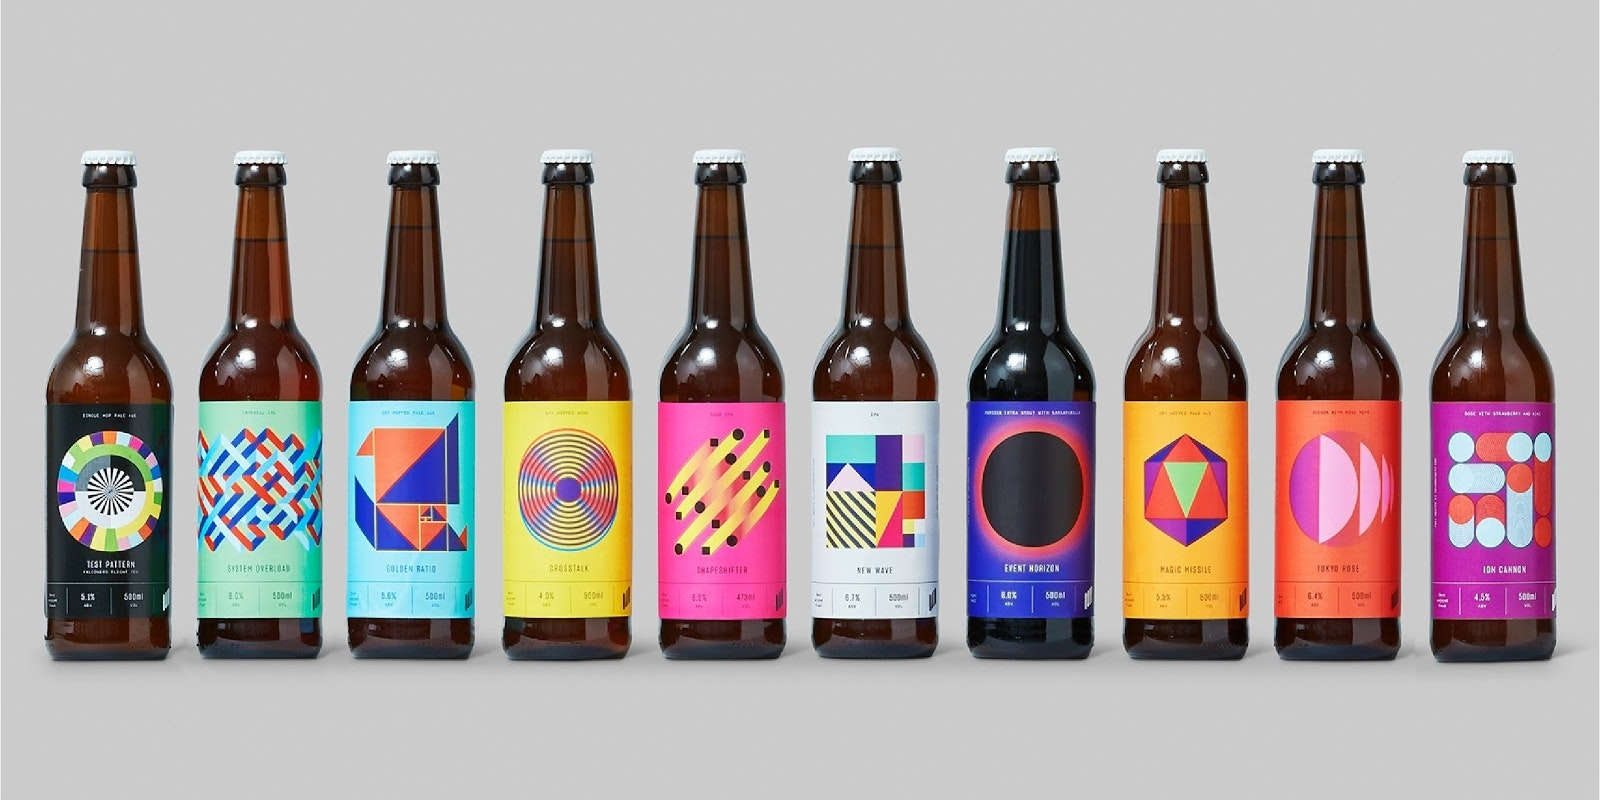 Colorful and experimental branding